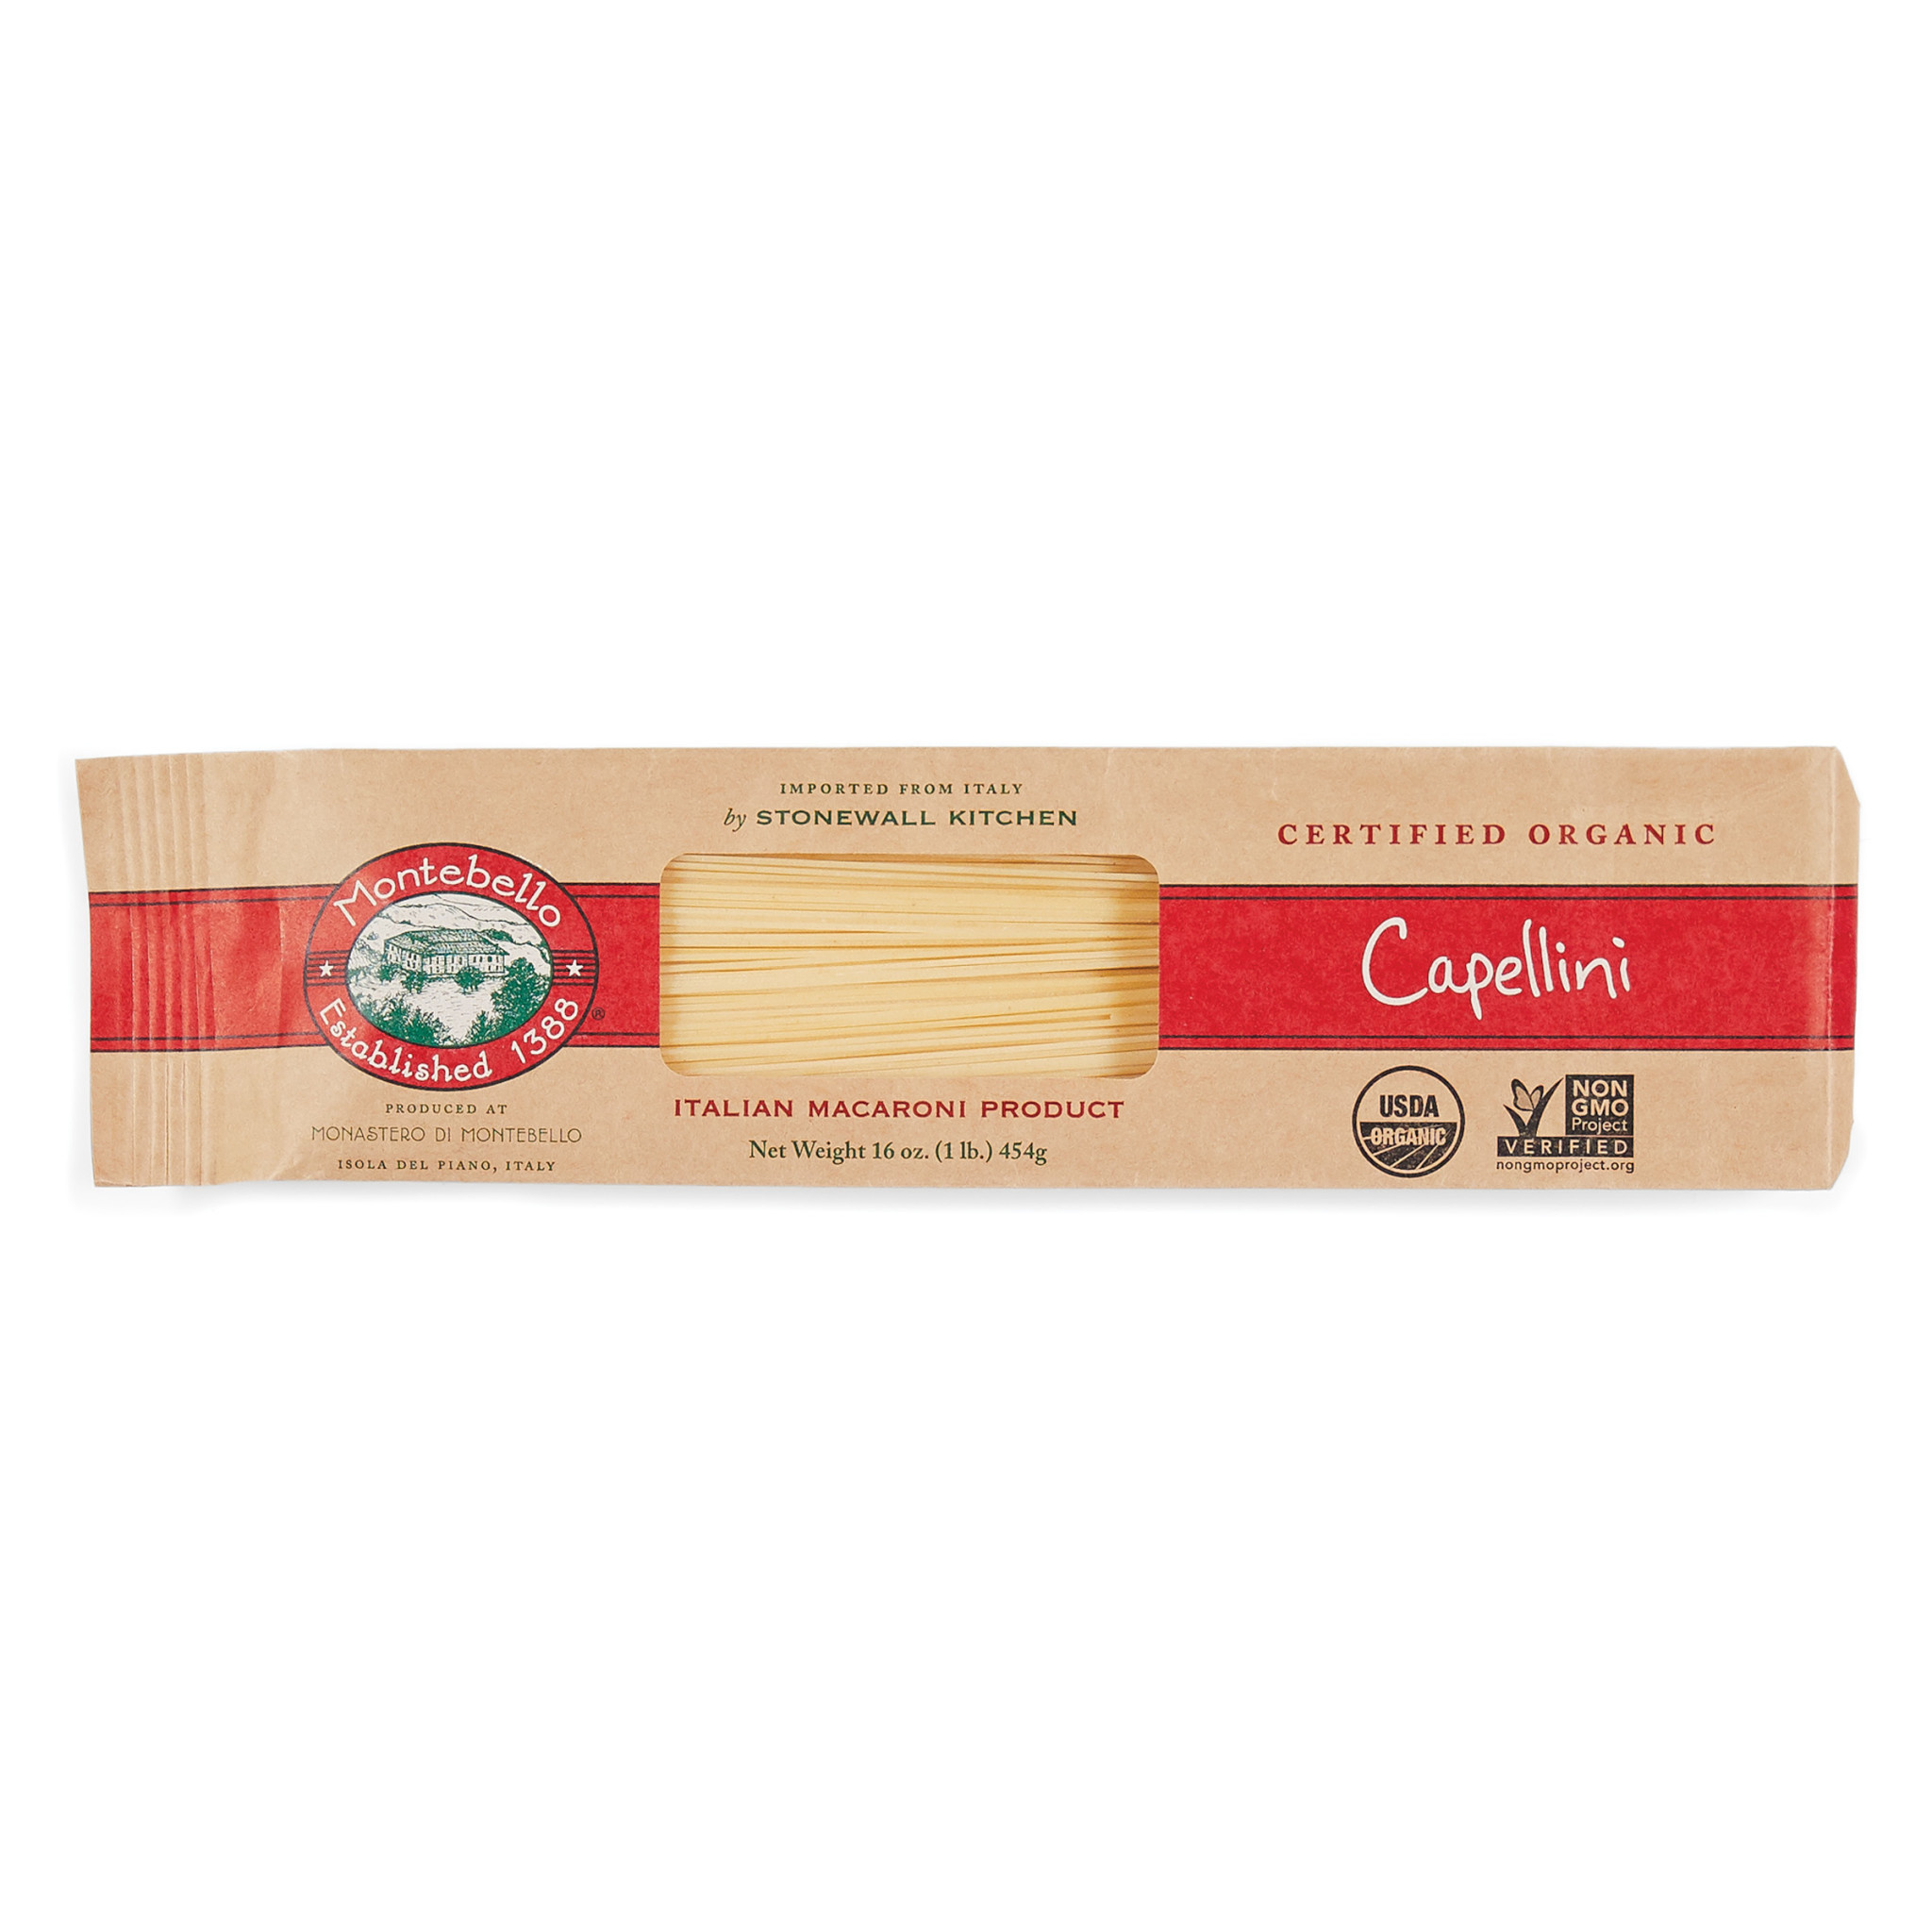 Stonewall Kitchen Pasta Capellini